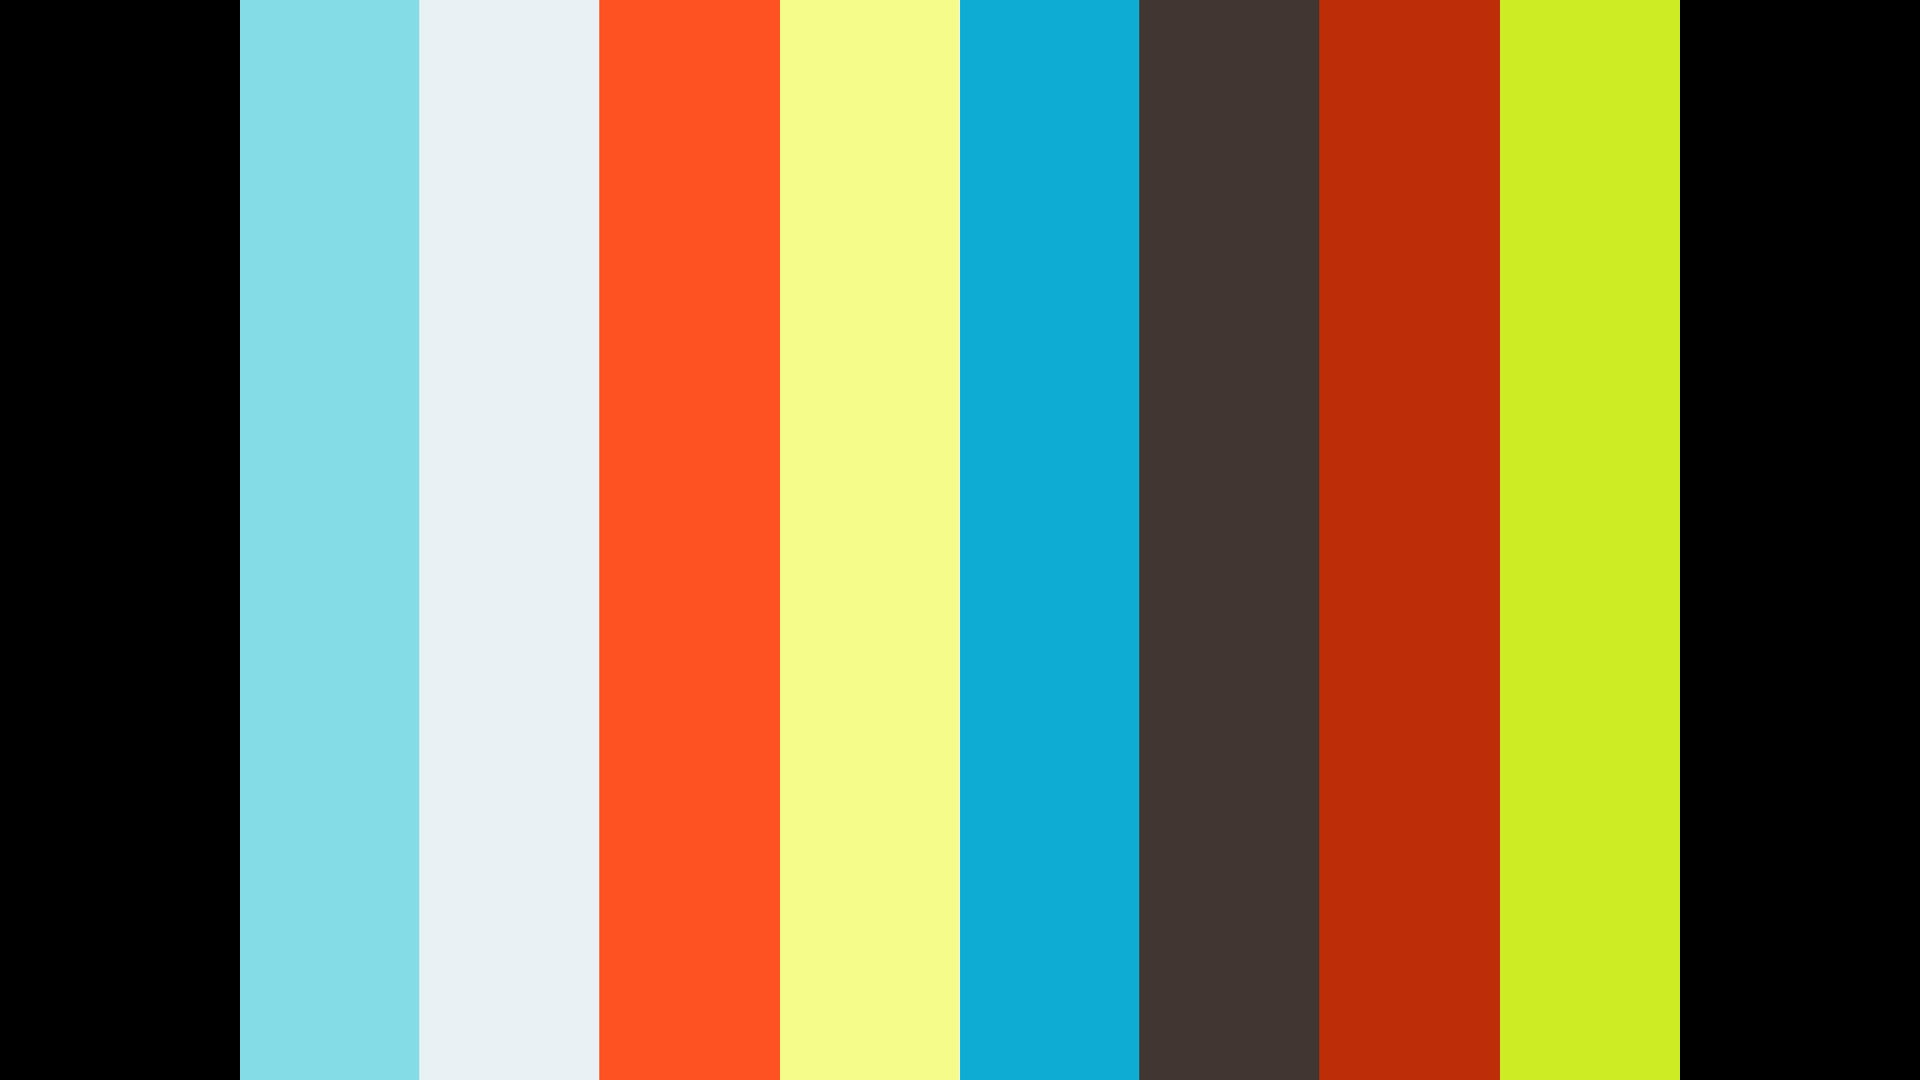 NFTY-MAR Winter 2019